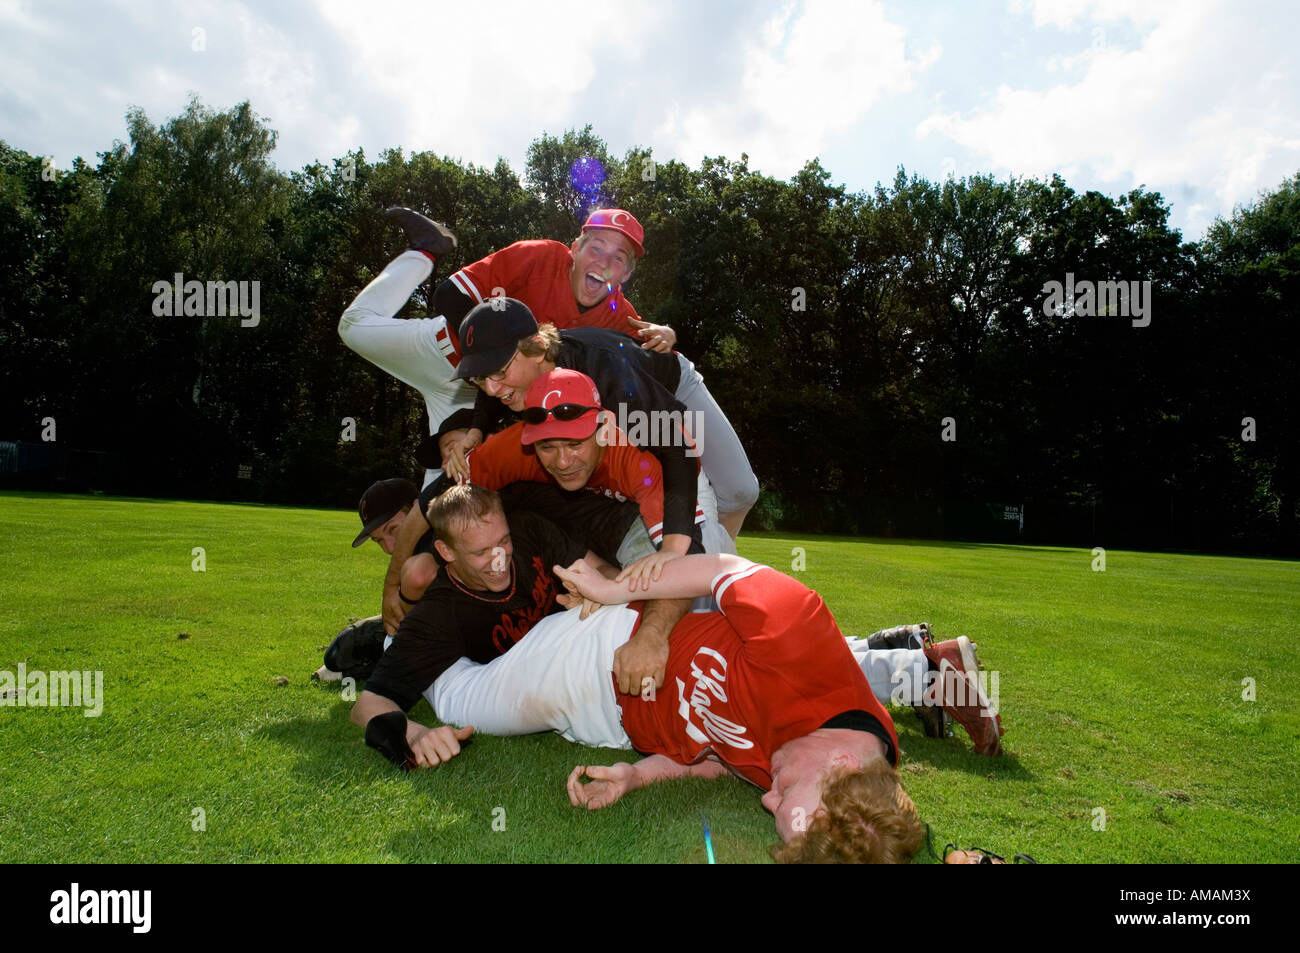 A baseball team piled on top of one another - Stock Image